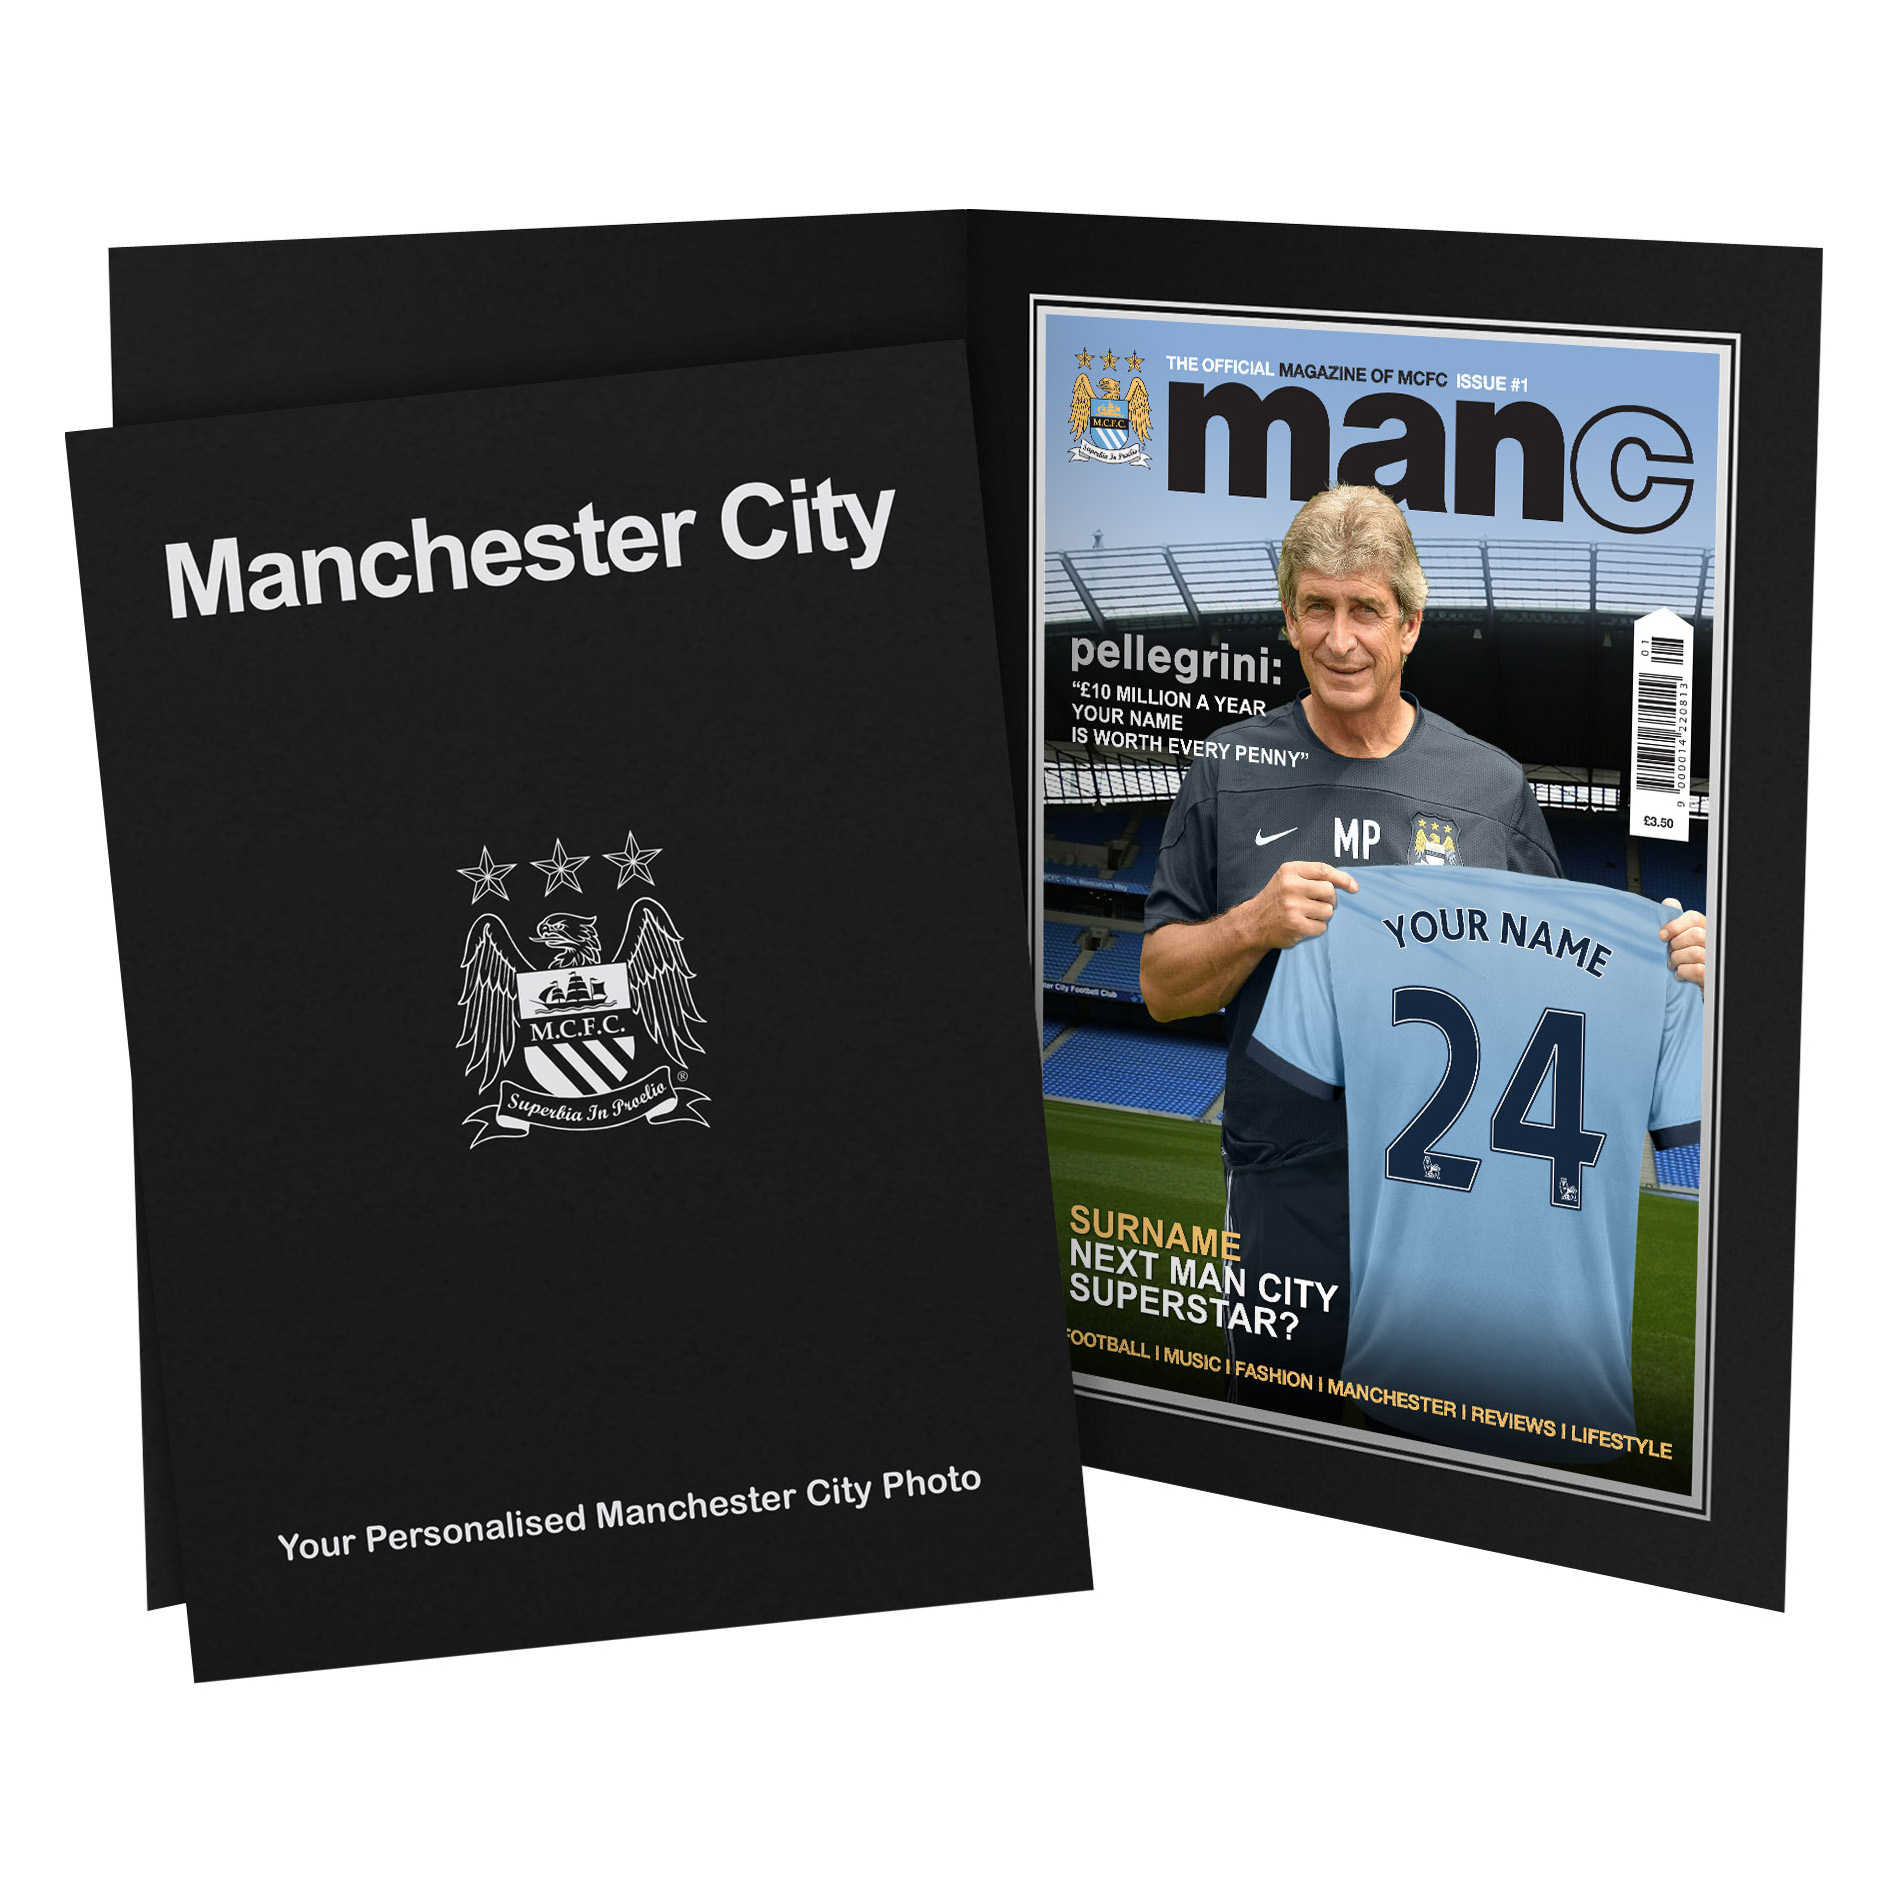 Manchester City Personalised Magazine Cover in Presentation Folder